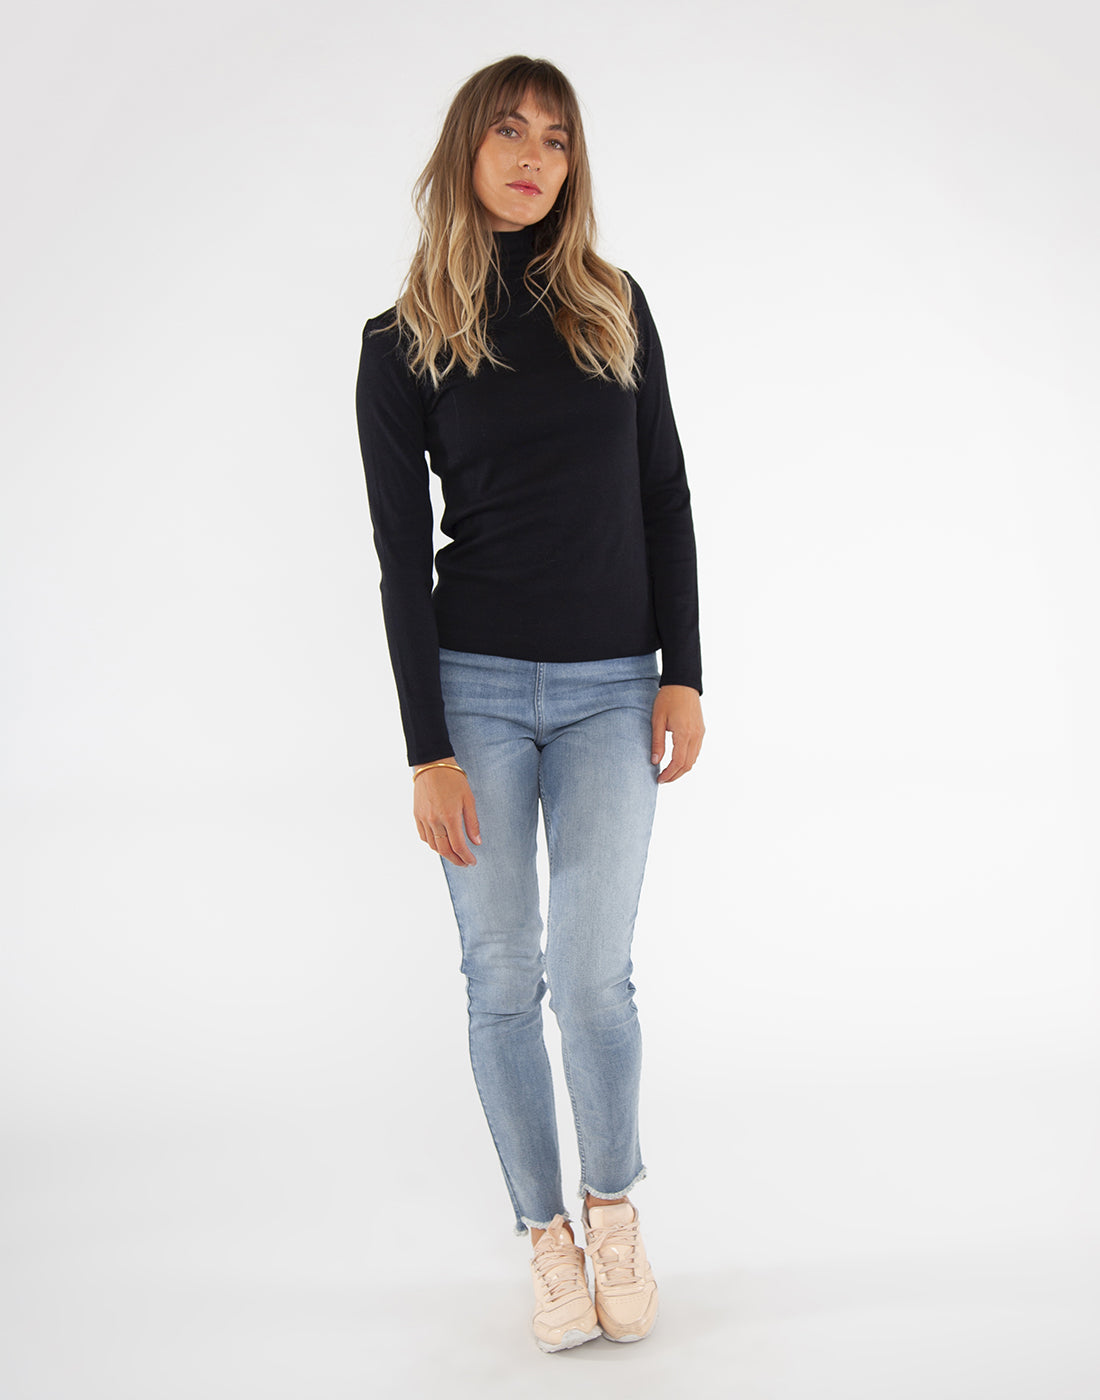 Denia Top : Black